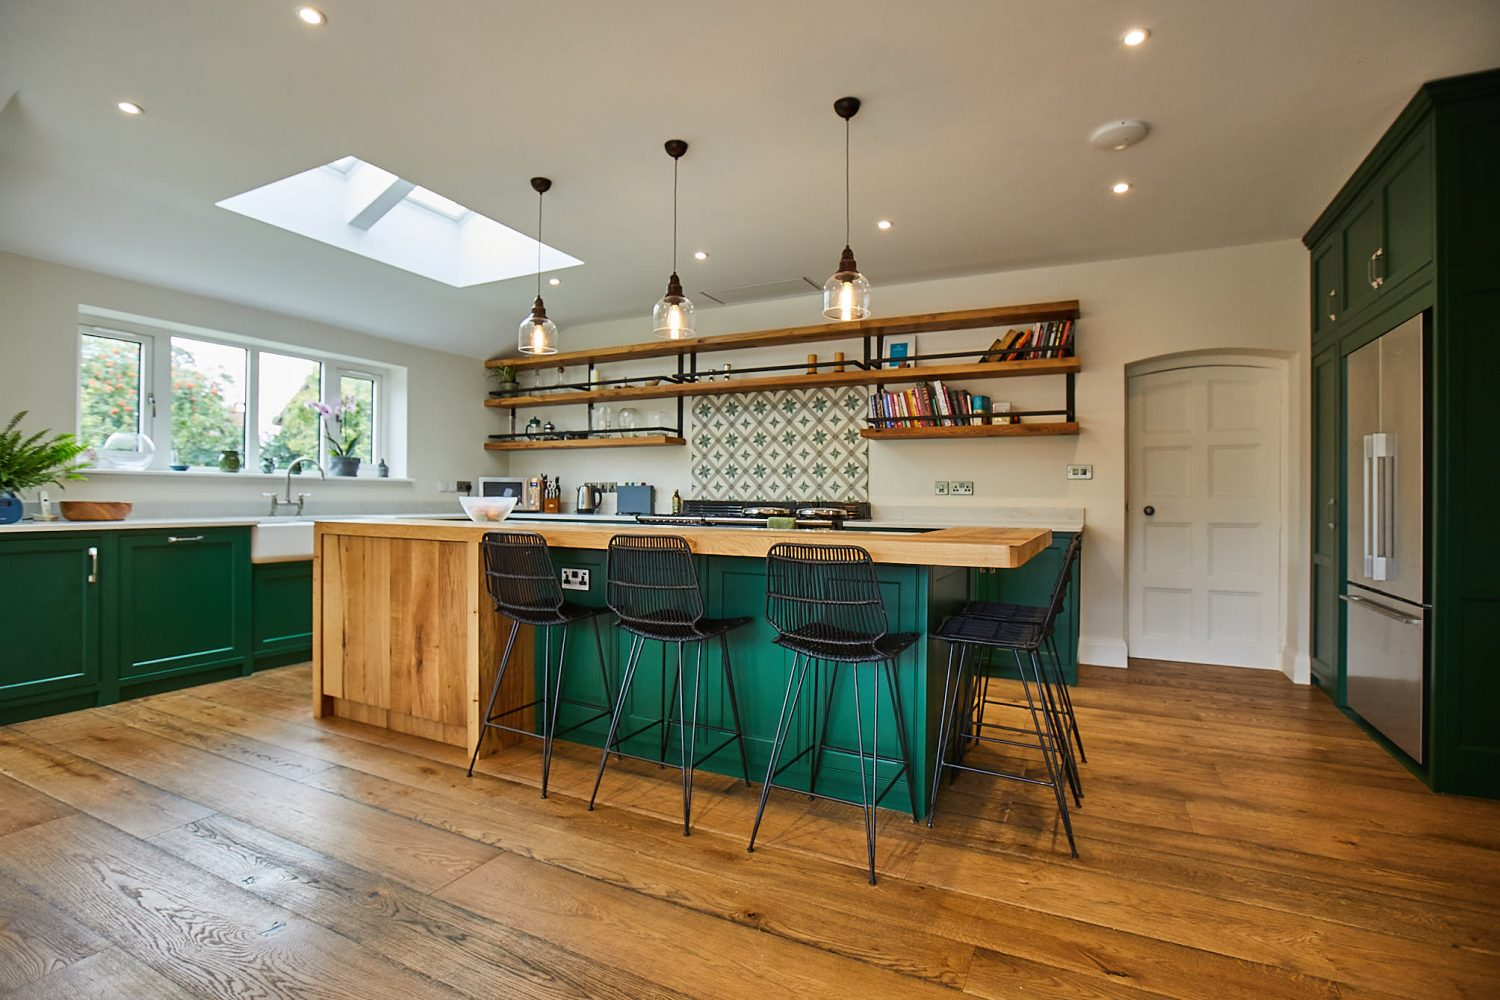 Bepoke kitchen island with clean oak cabinets contrasting with green painted cabinets